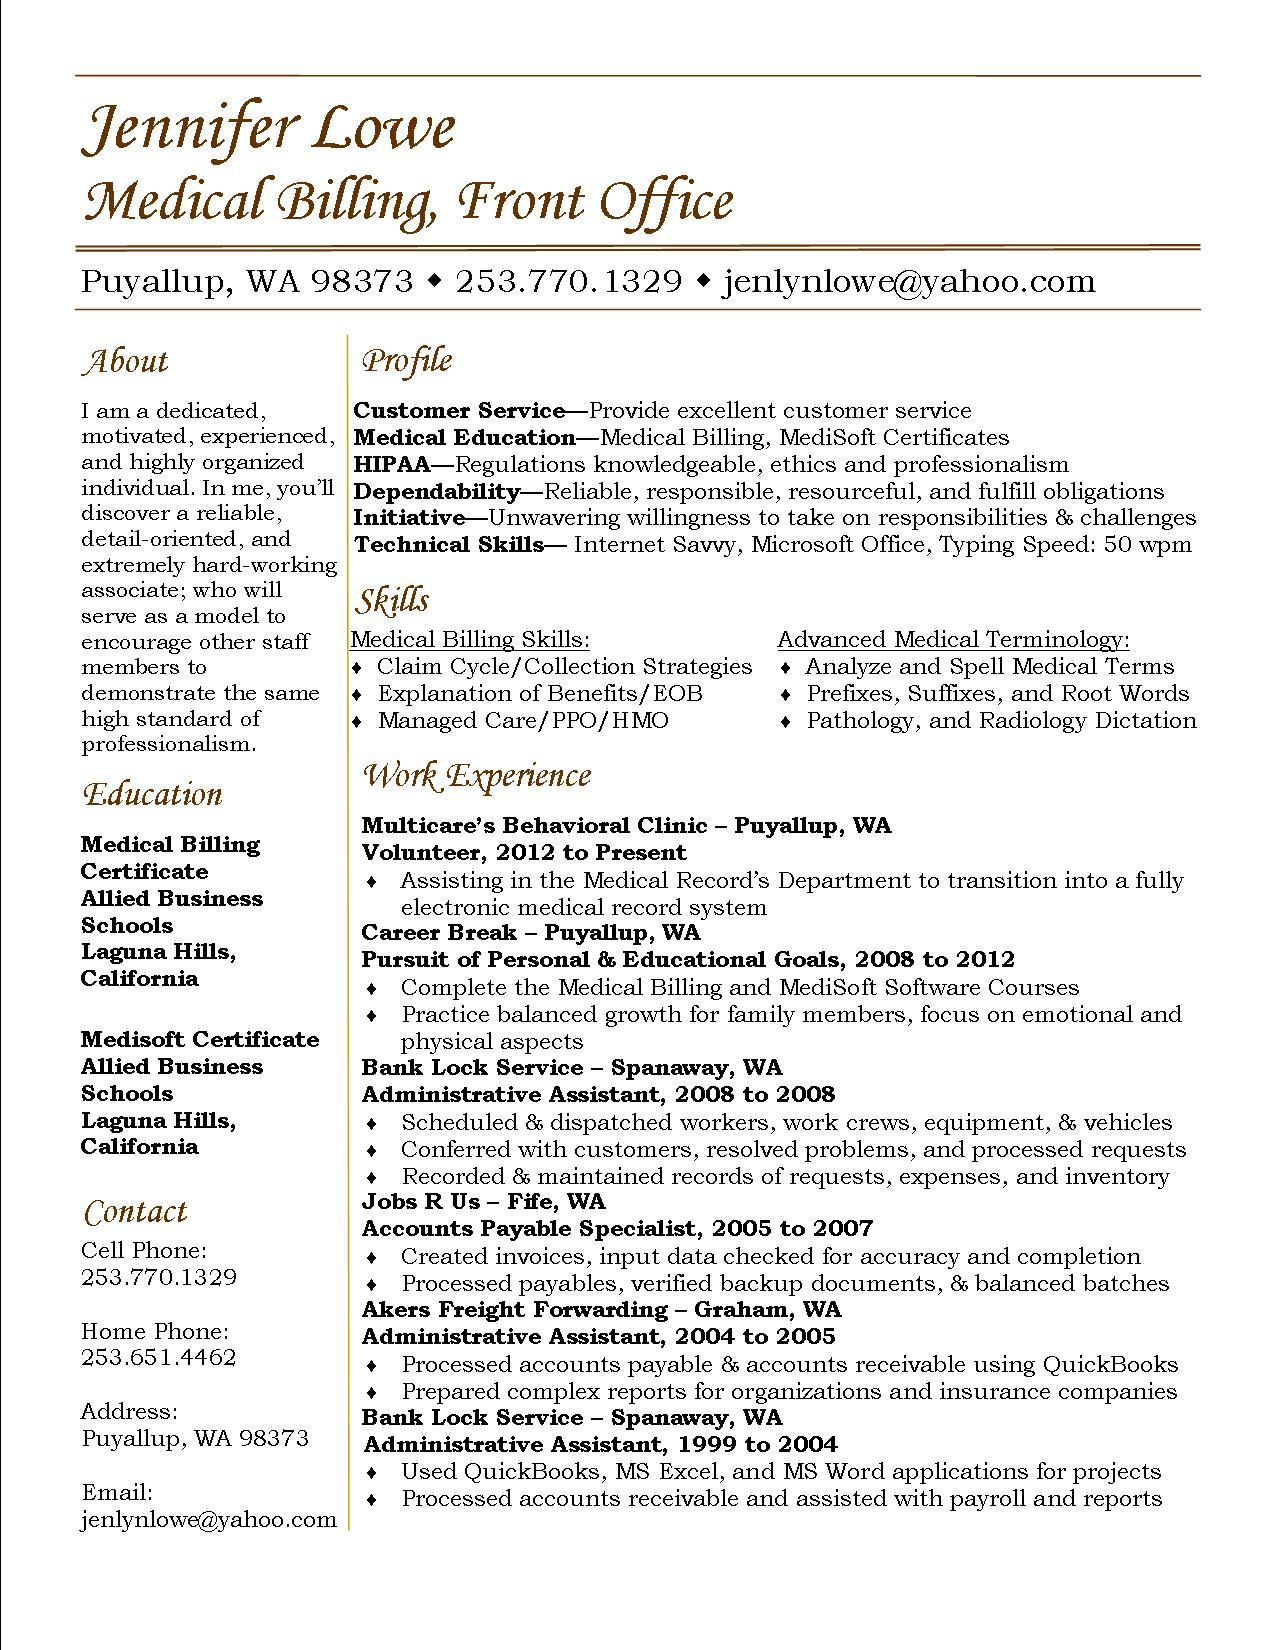 jennifer lowe resume - medical billing #resume #career | medical ... - Medical Billing Resume Examples